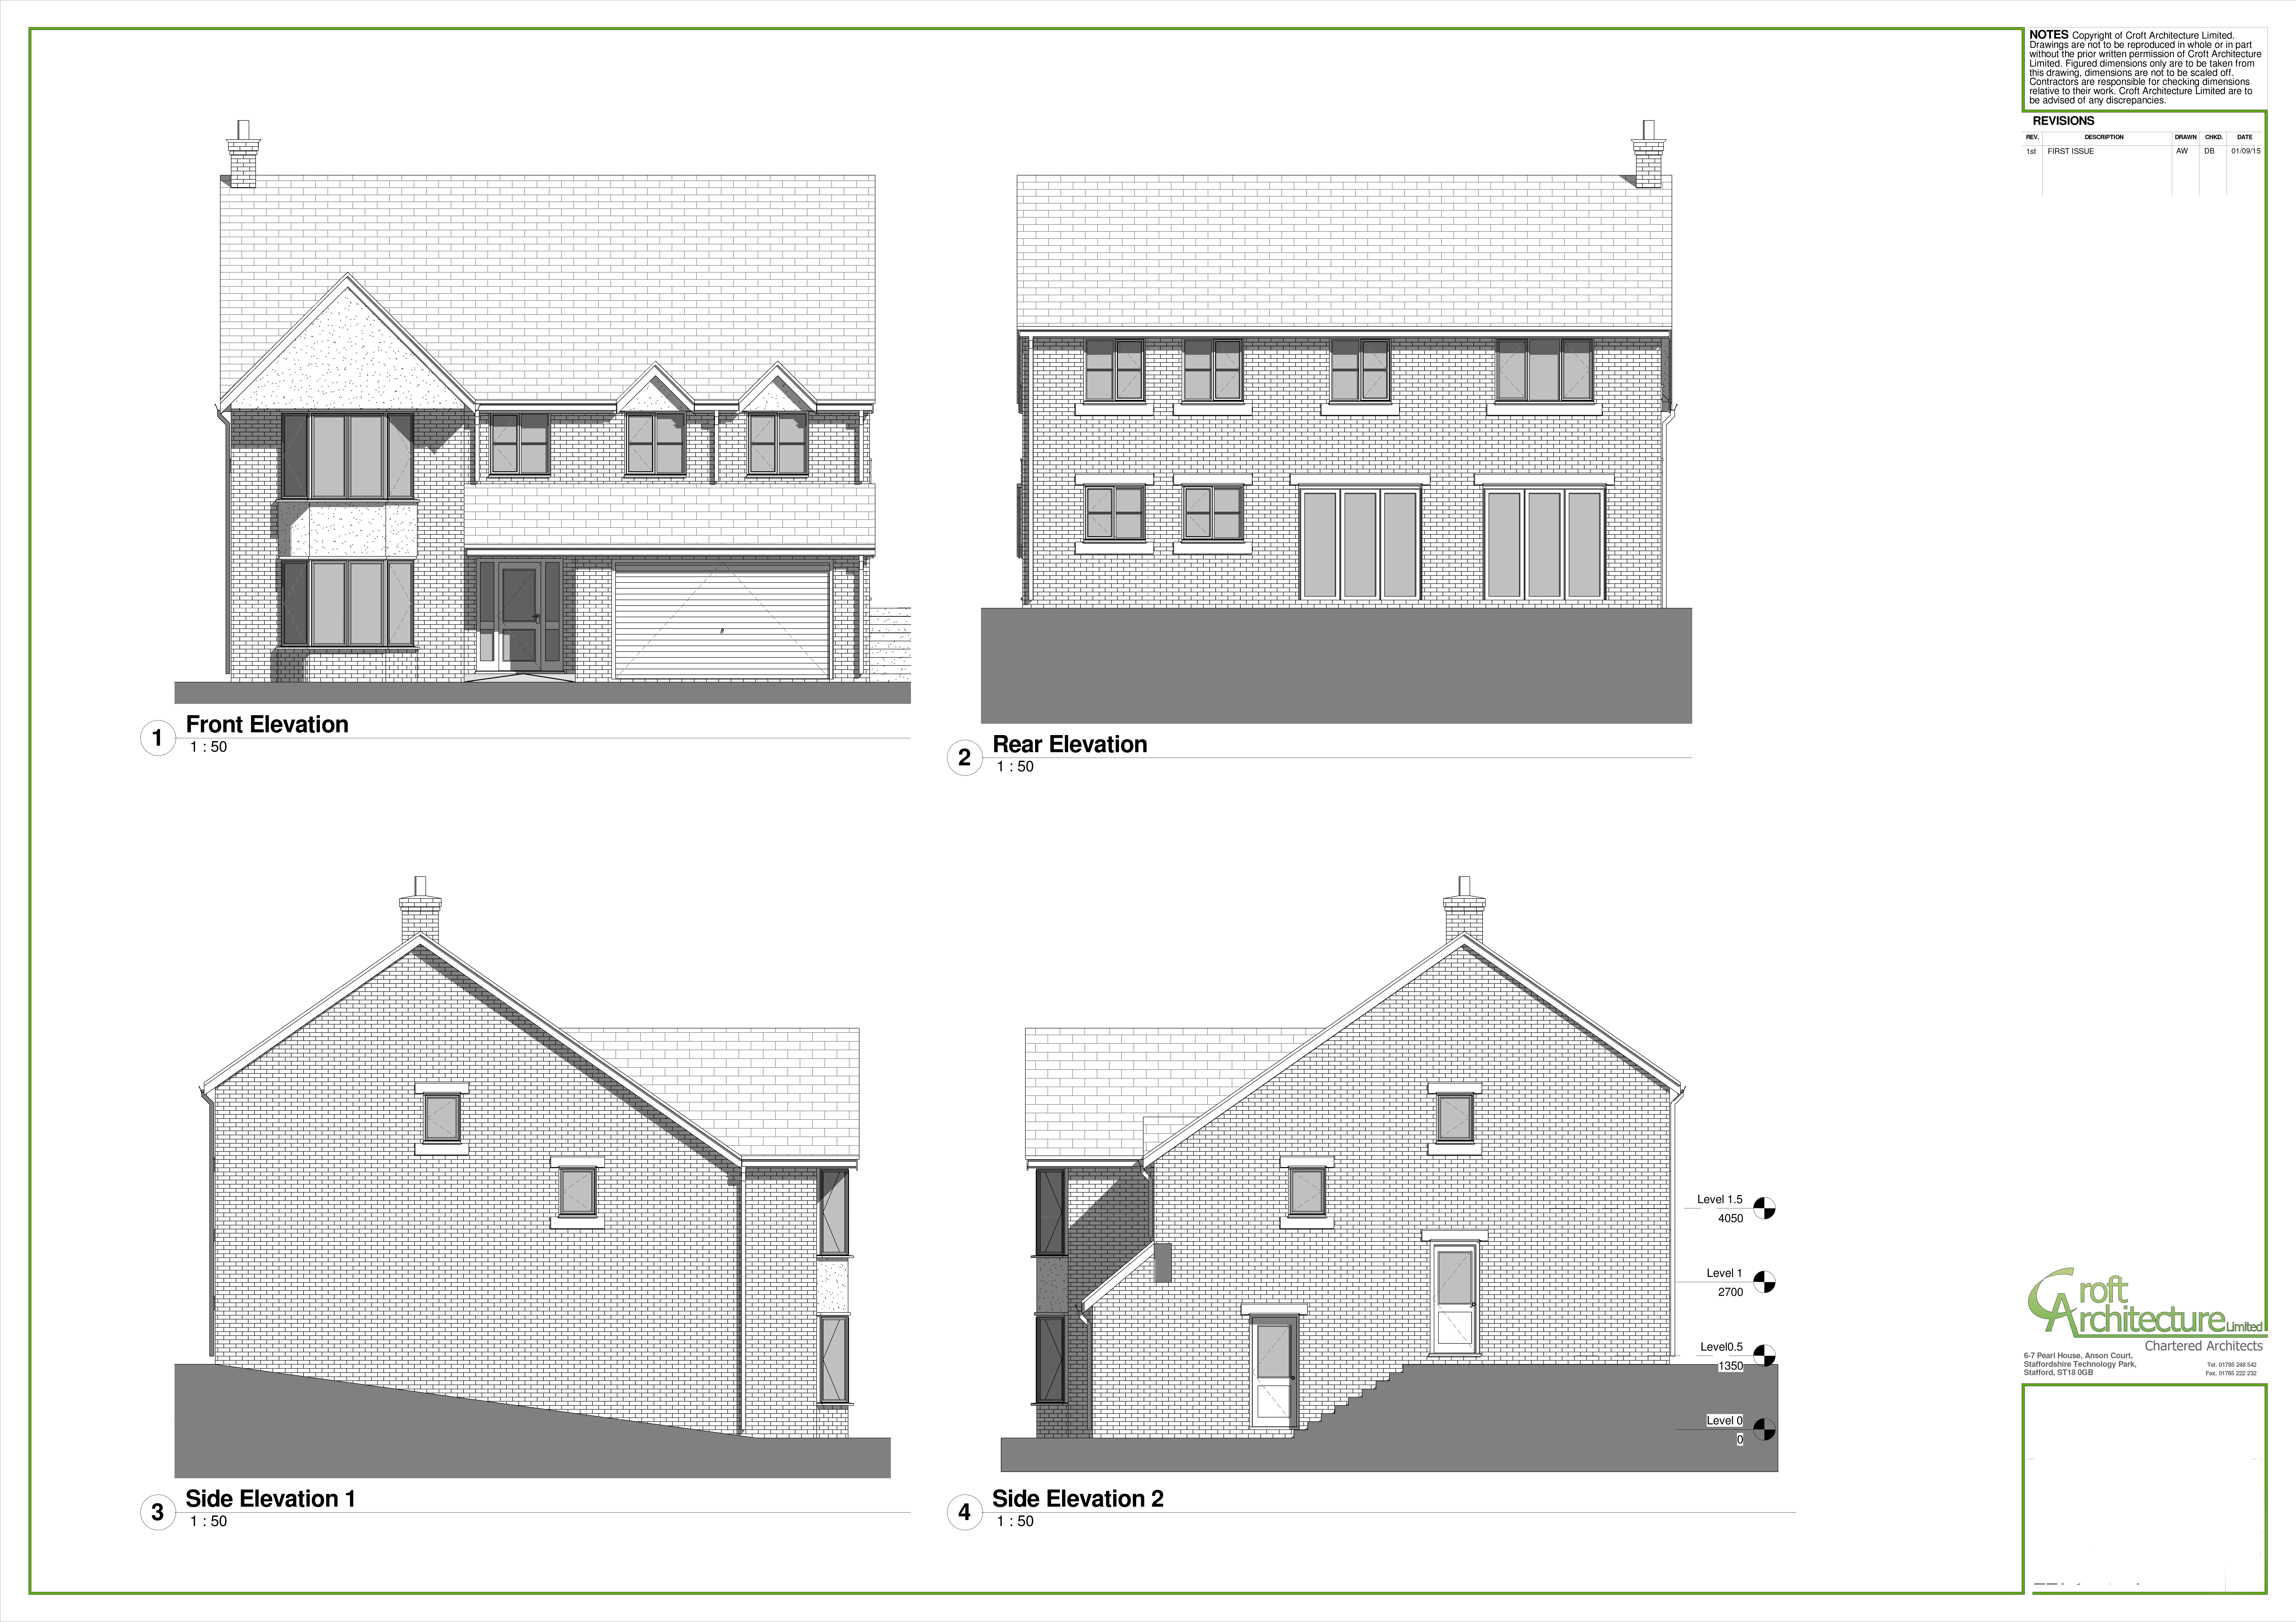 Croft Architecture House Type 6 Proposed Luxury Housing in Staffordshire